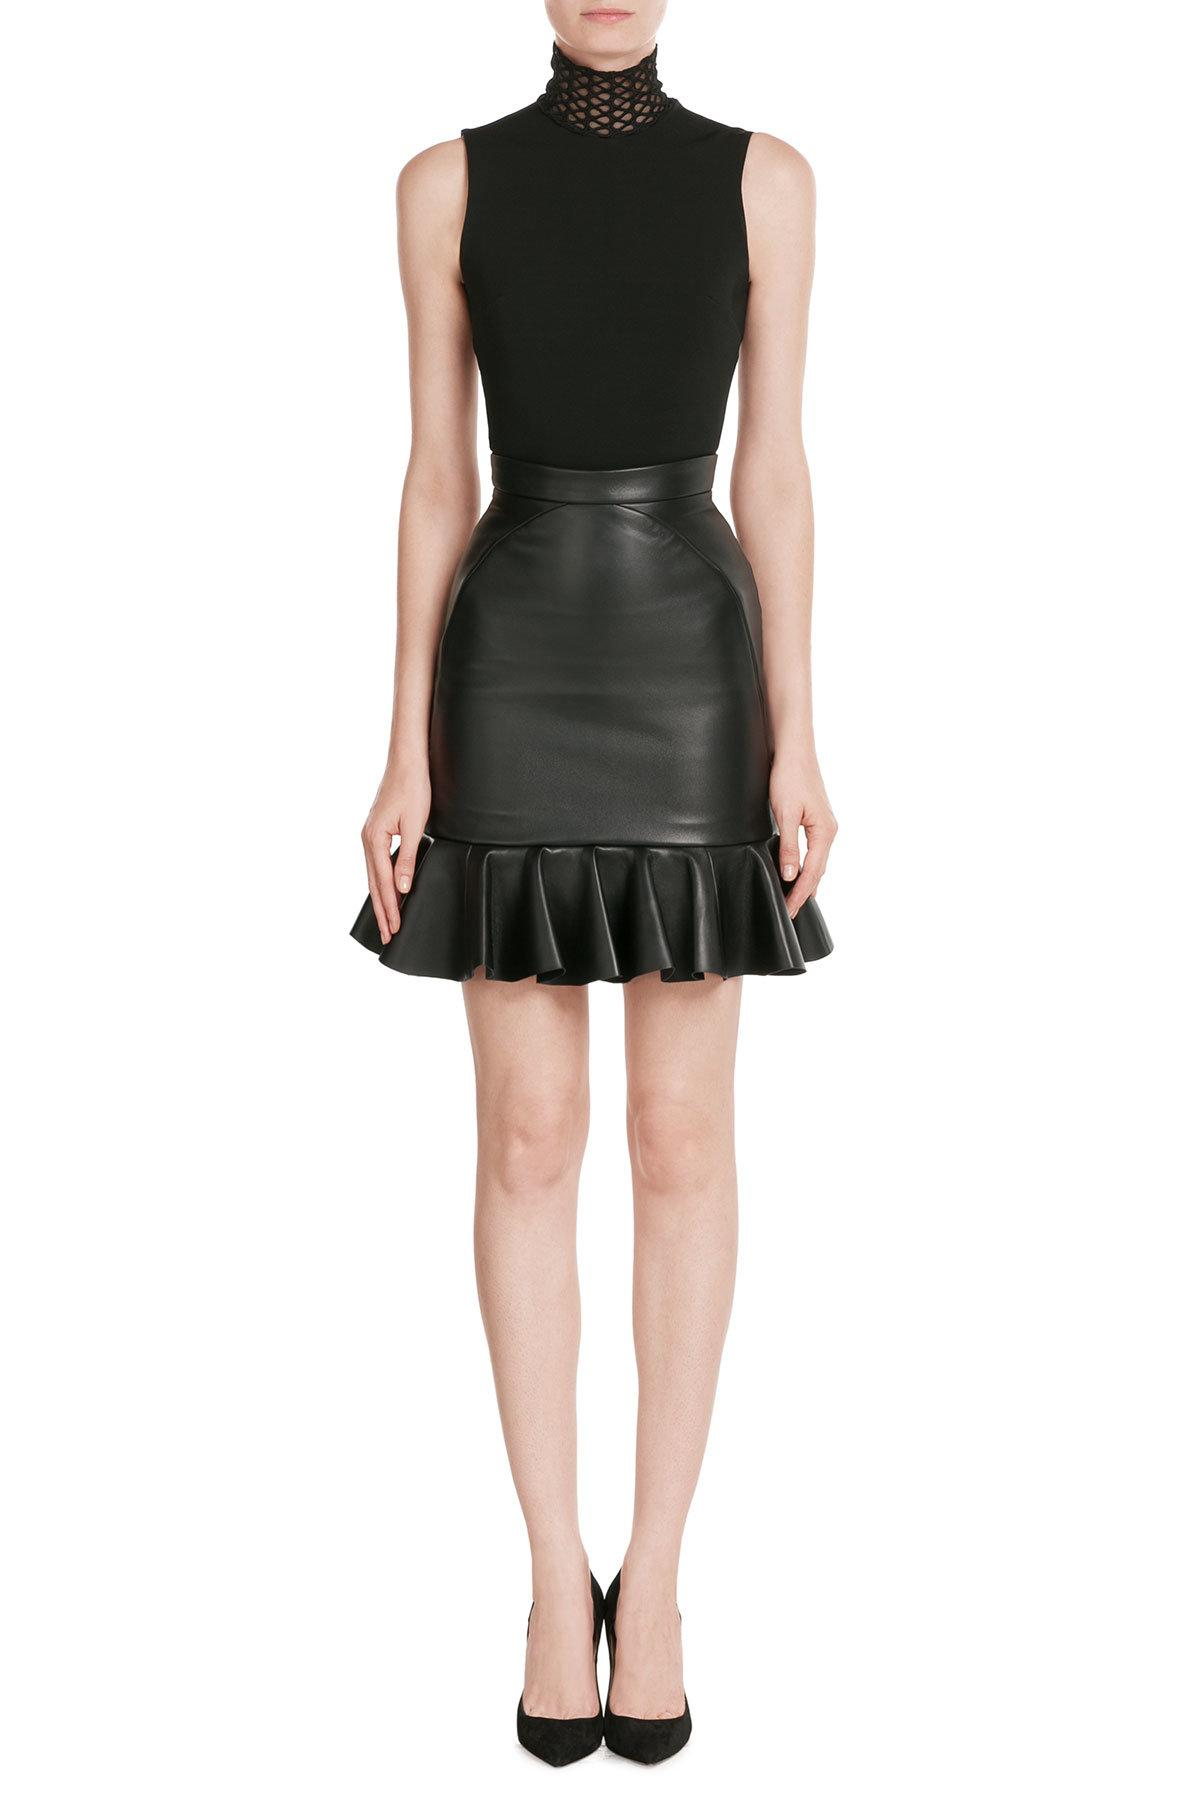 Ruffle Front Faux Leather Skirt: You'll be the center of attention in this faux leather skirt, with its fun asymmetrical ruffle detail at the hem. Foldover waistband with a back zip closure. Foldover waistband with a back zip closure.